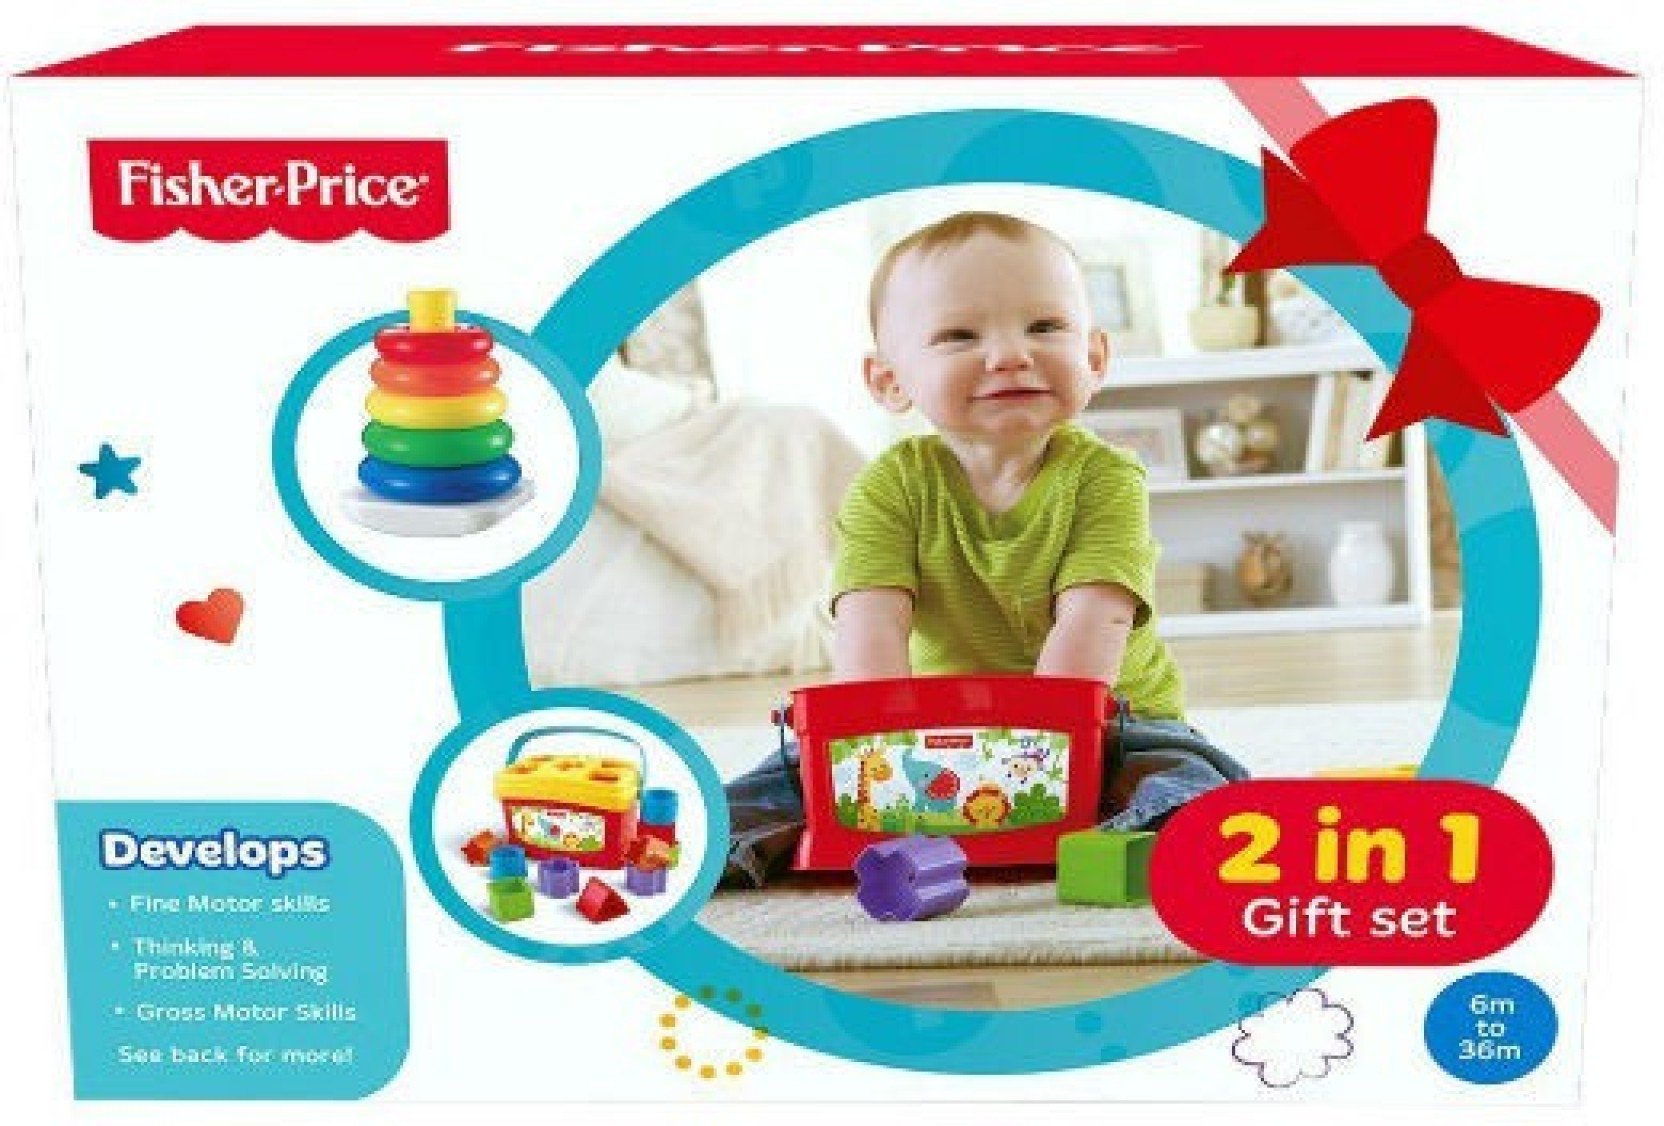 Baby Gift Set Flipkart : Fisher price in gift set with baby s first blocks